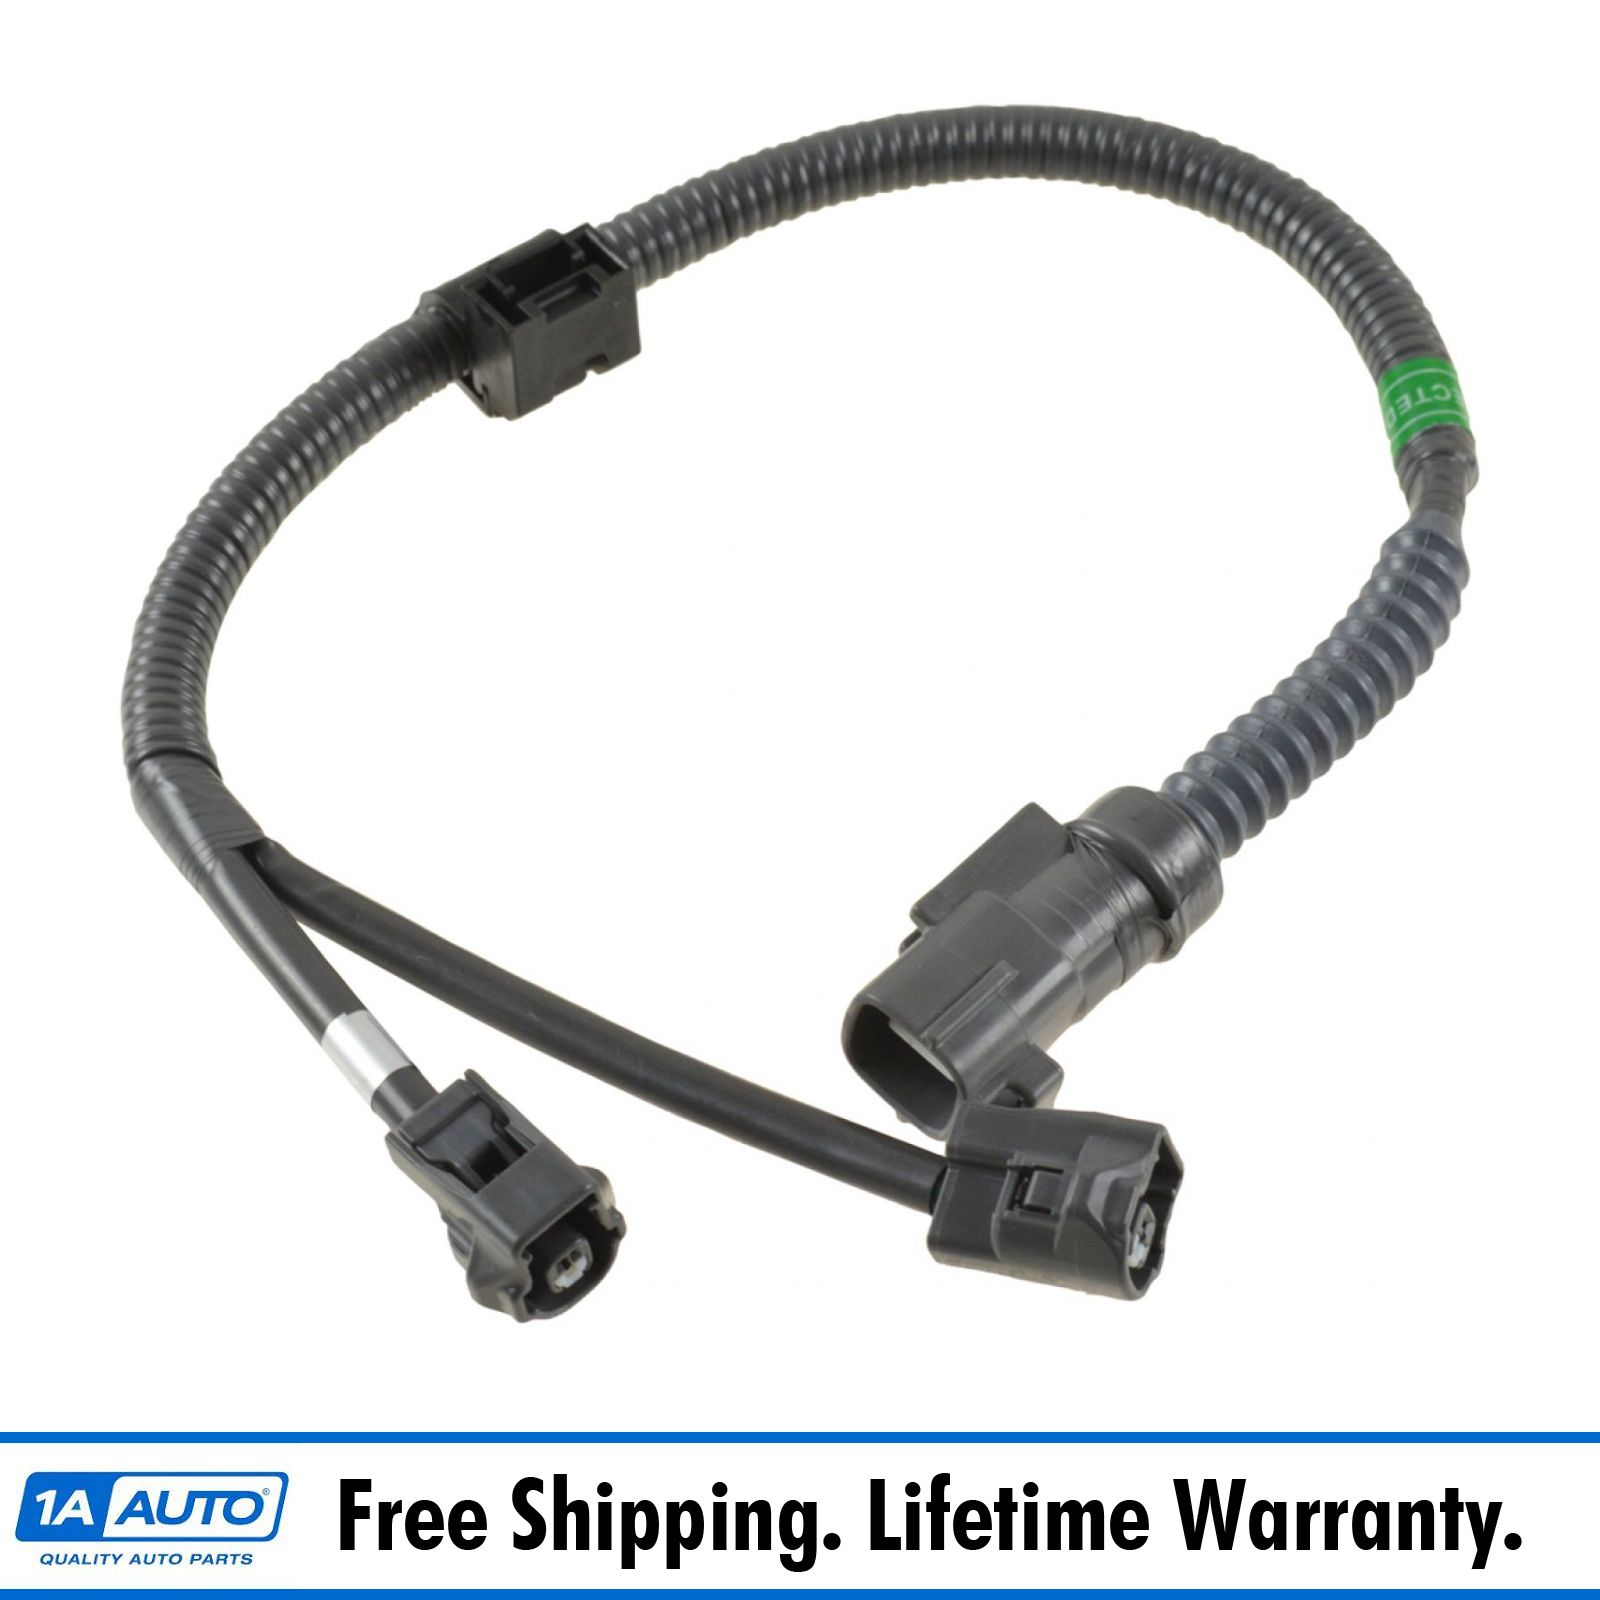 oem engine knock sensor wiring harness pigtail plug for 3 0 toyota toyota exhaust parts image [ 1600 x 1600 Pixel ]